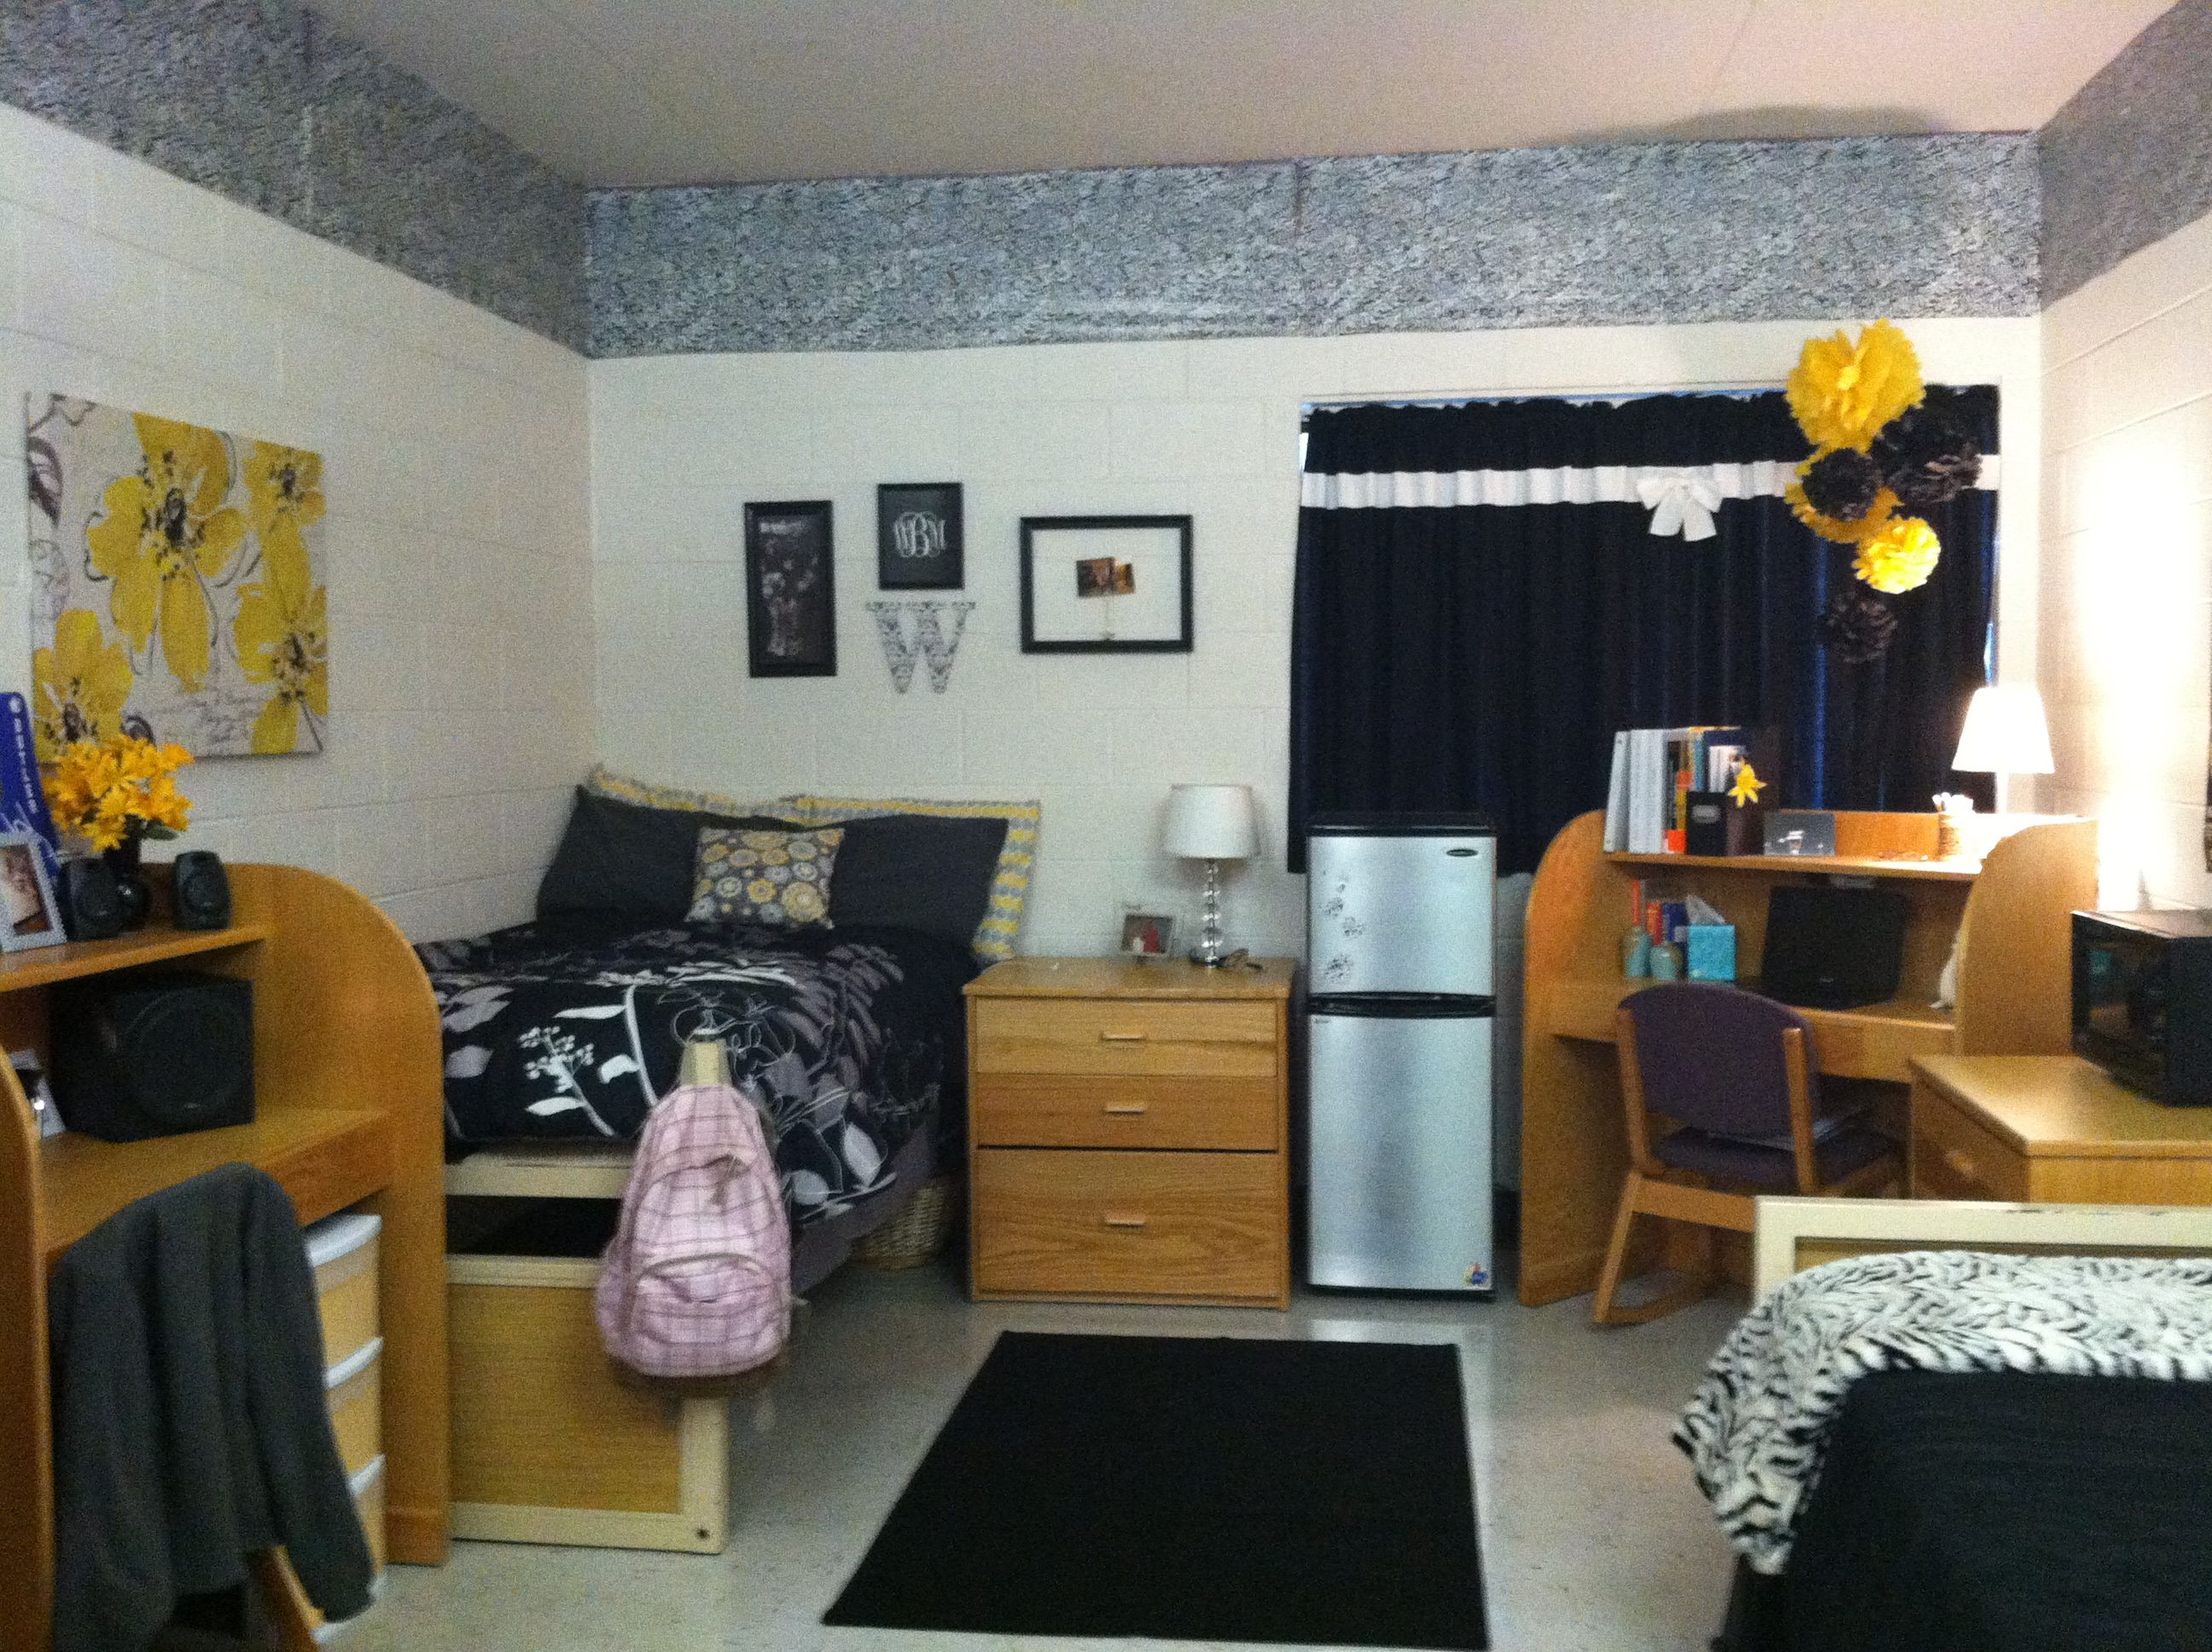 Can You Loft Your Bed At Mizzou